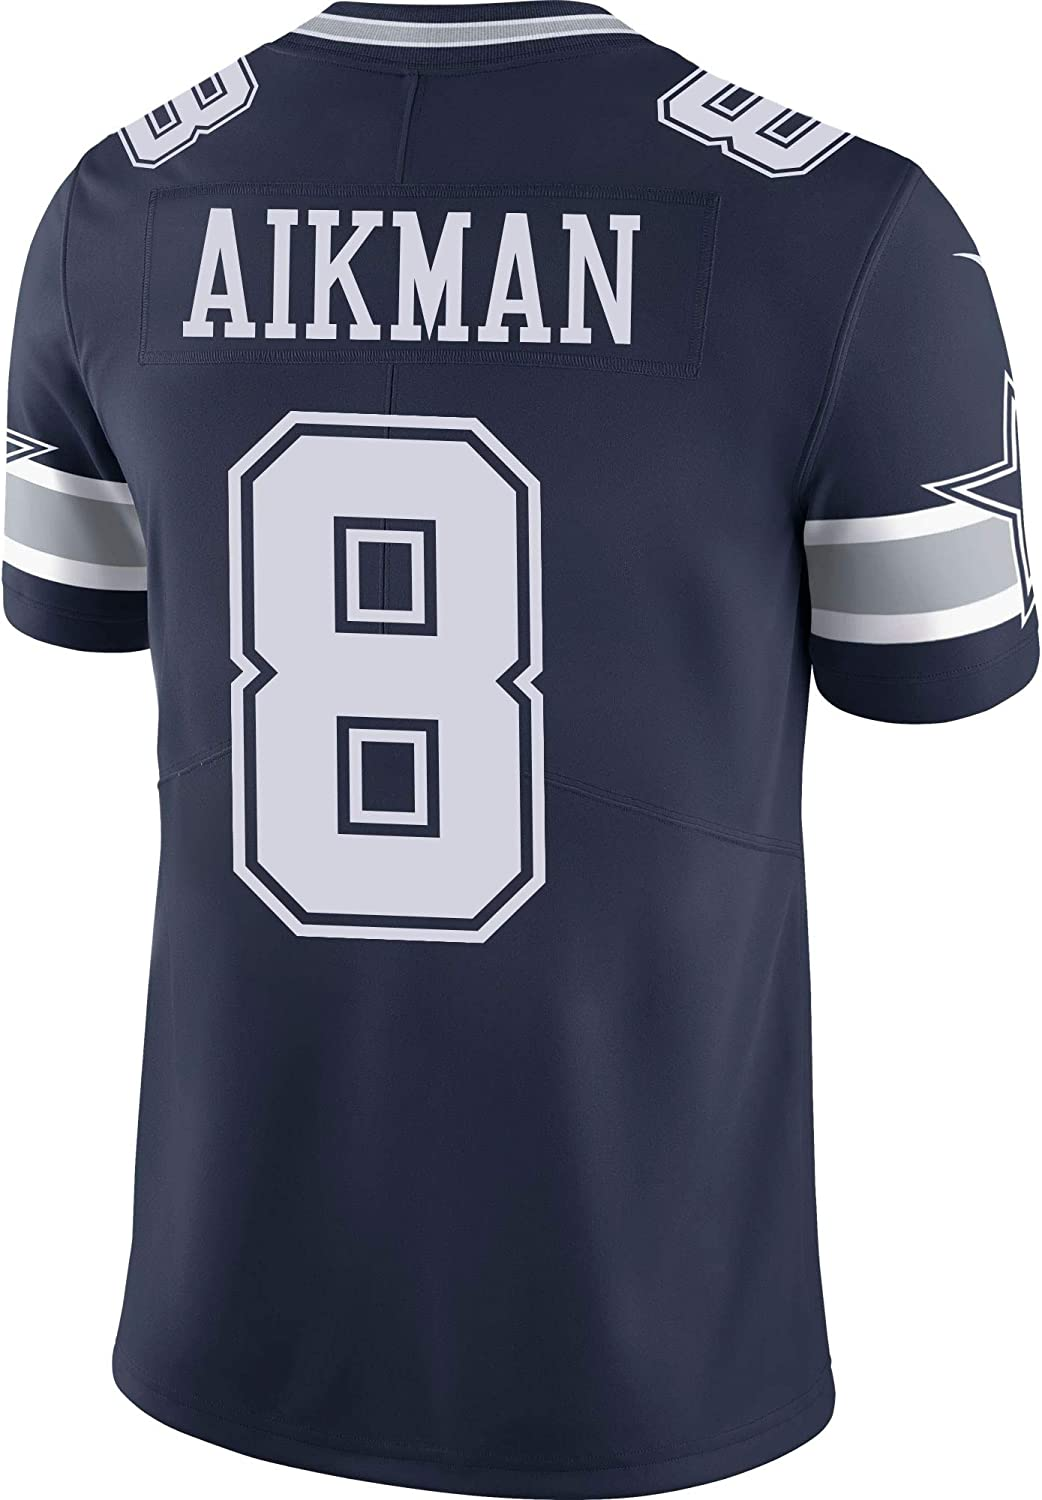 Dallas Cowboys Mens NFL Nike Limited Jersey